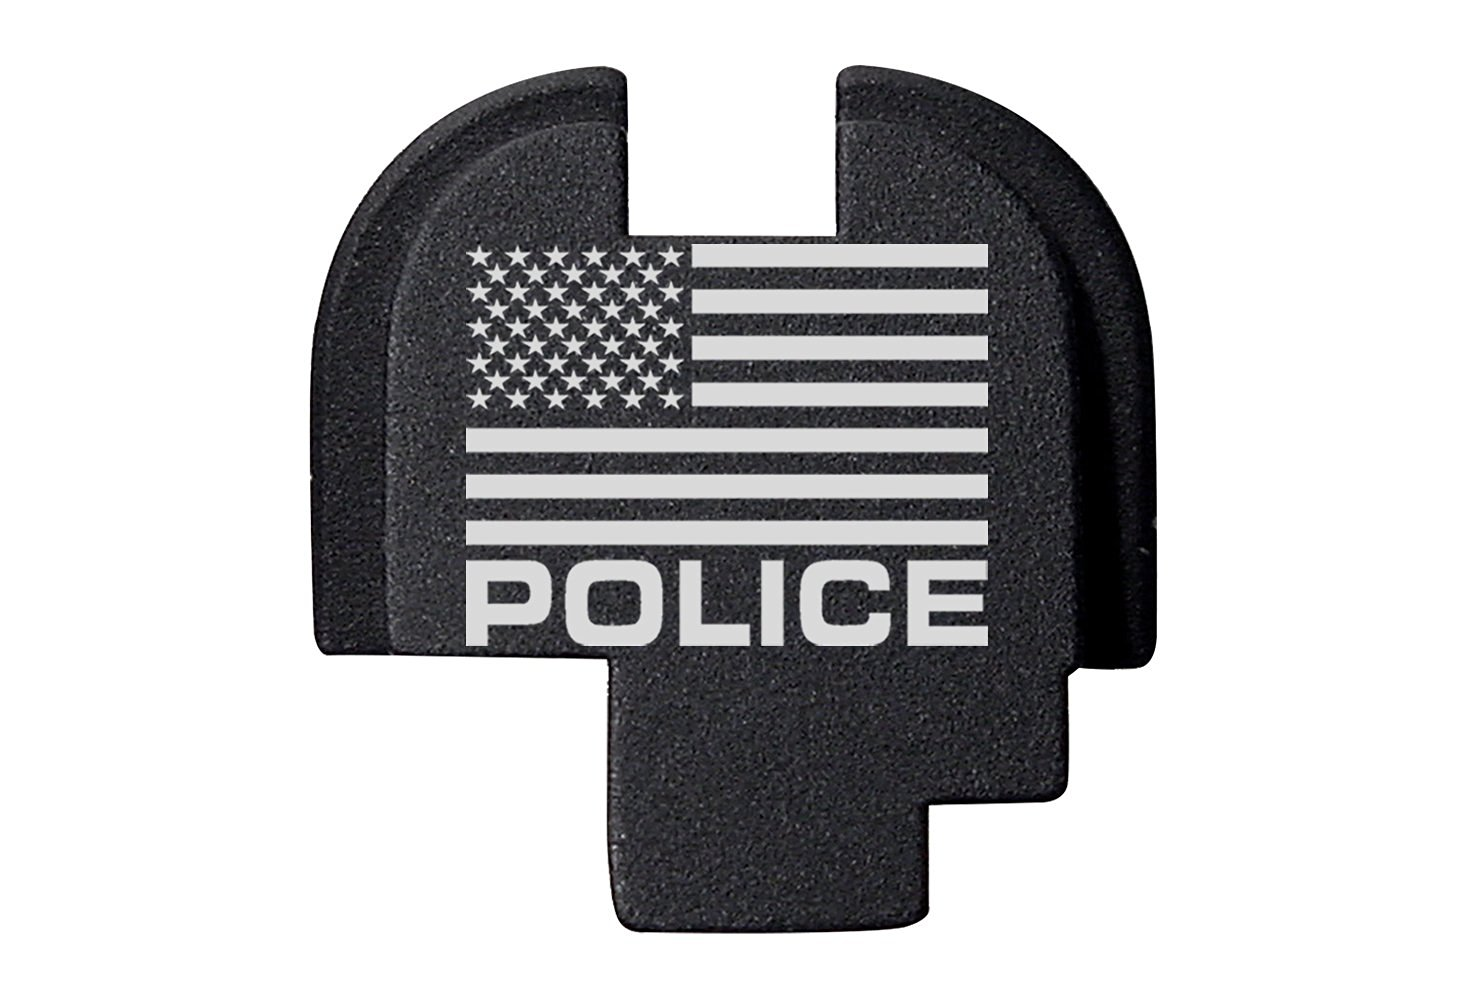 For Springfield Armory XDS 9mm 45ACP Rear Slide Plate Black Us Flag Police